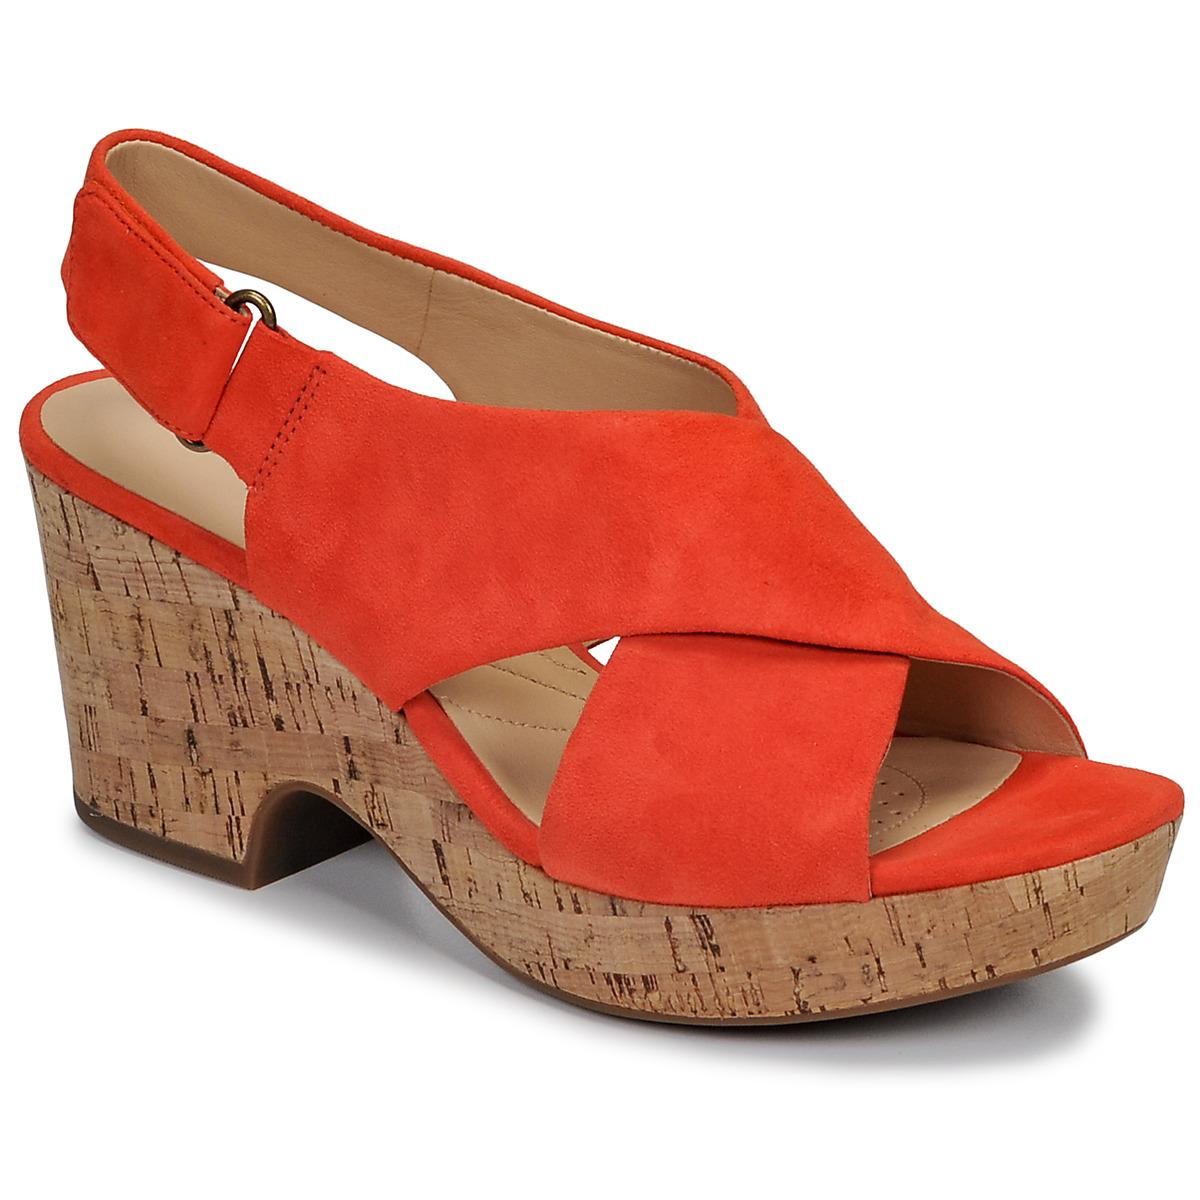 3ab939d49bf7f2 Clarks Maritsa Lara Sandals in Orange - Lyst